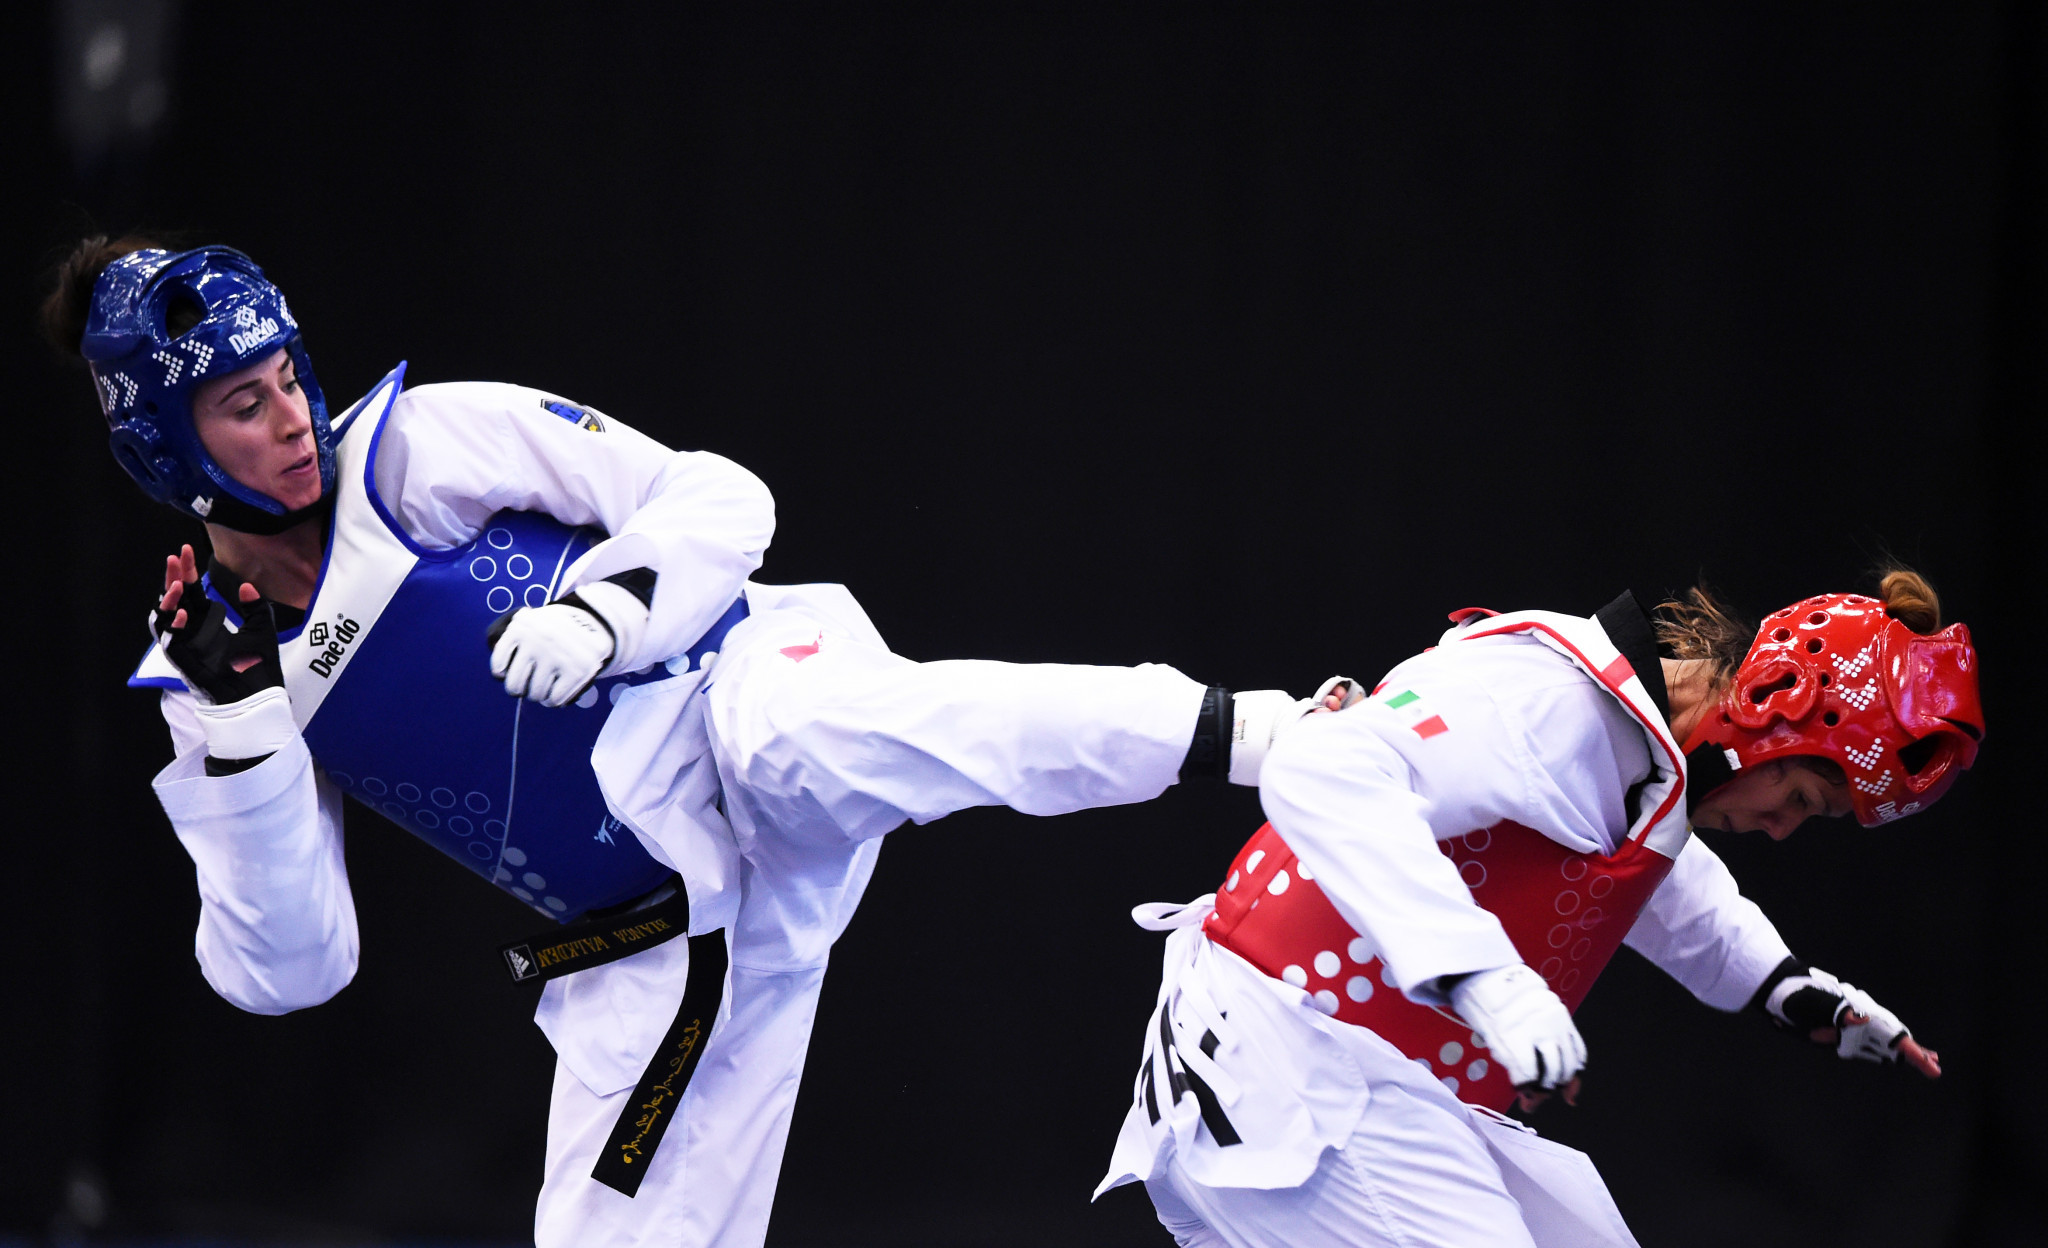 World champion Bianca Walkden claimed the women's over-73 kilograms title at the World Taekwondo President's Cup for Europe region in Antalya ©Getty Images